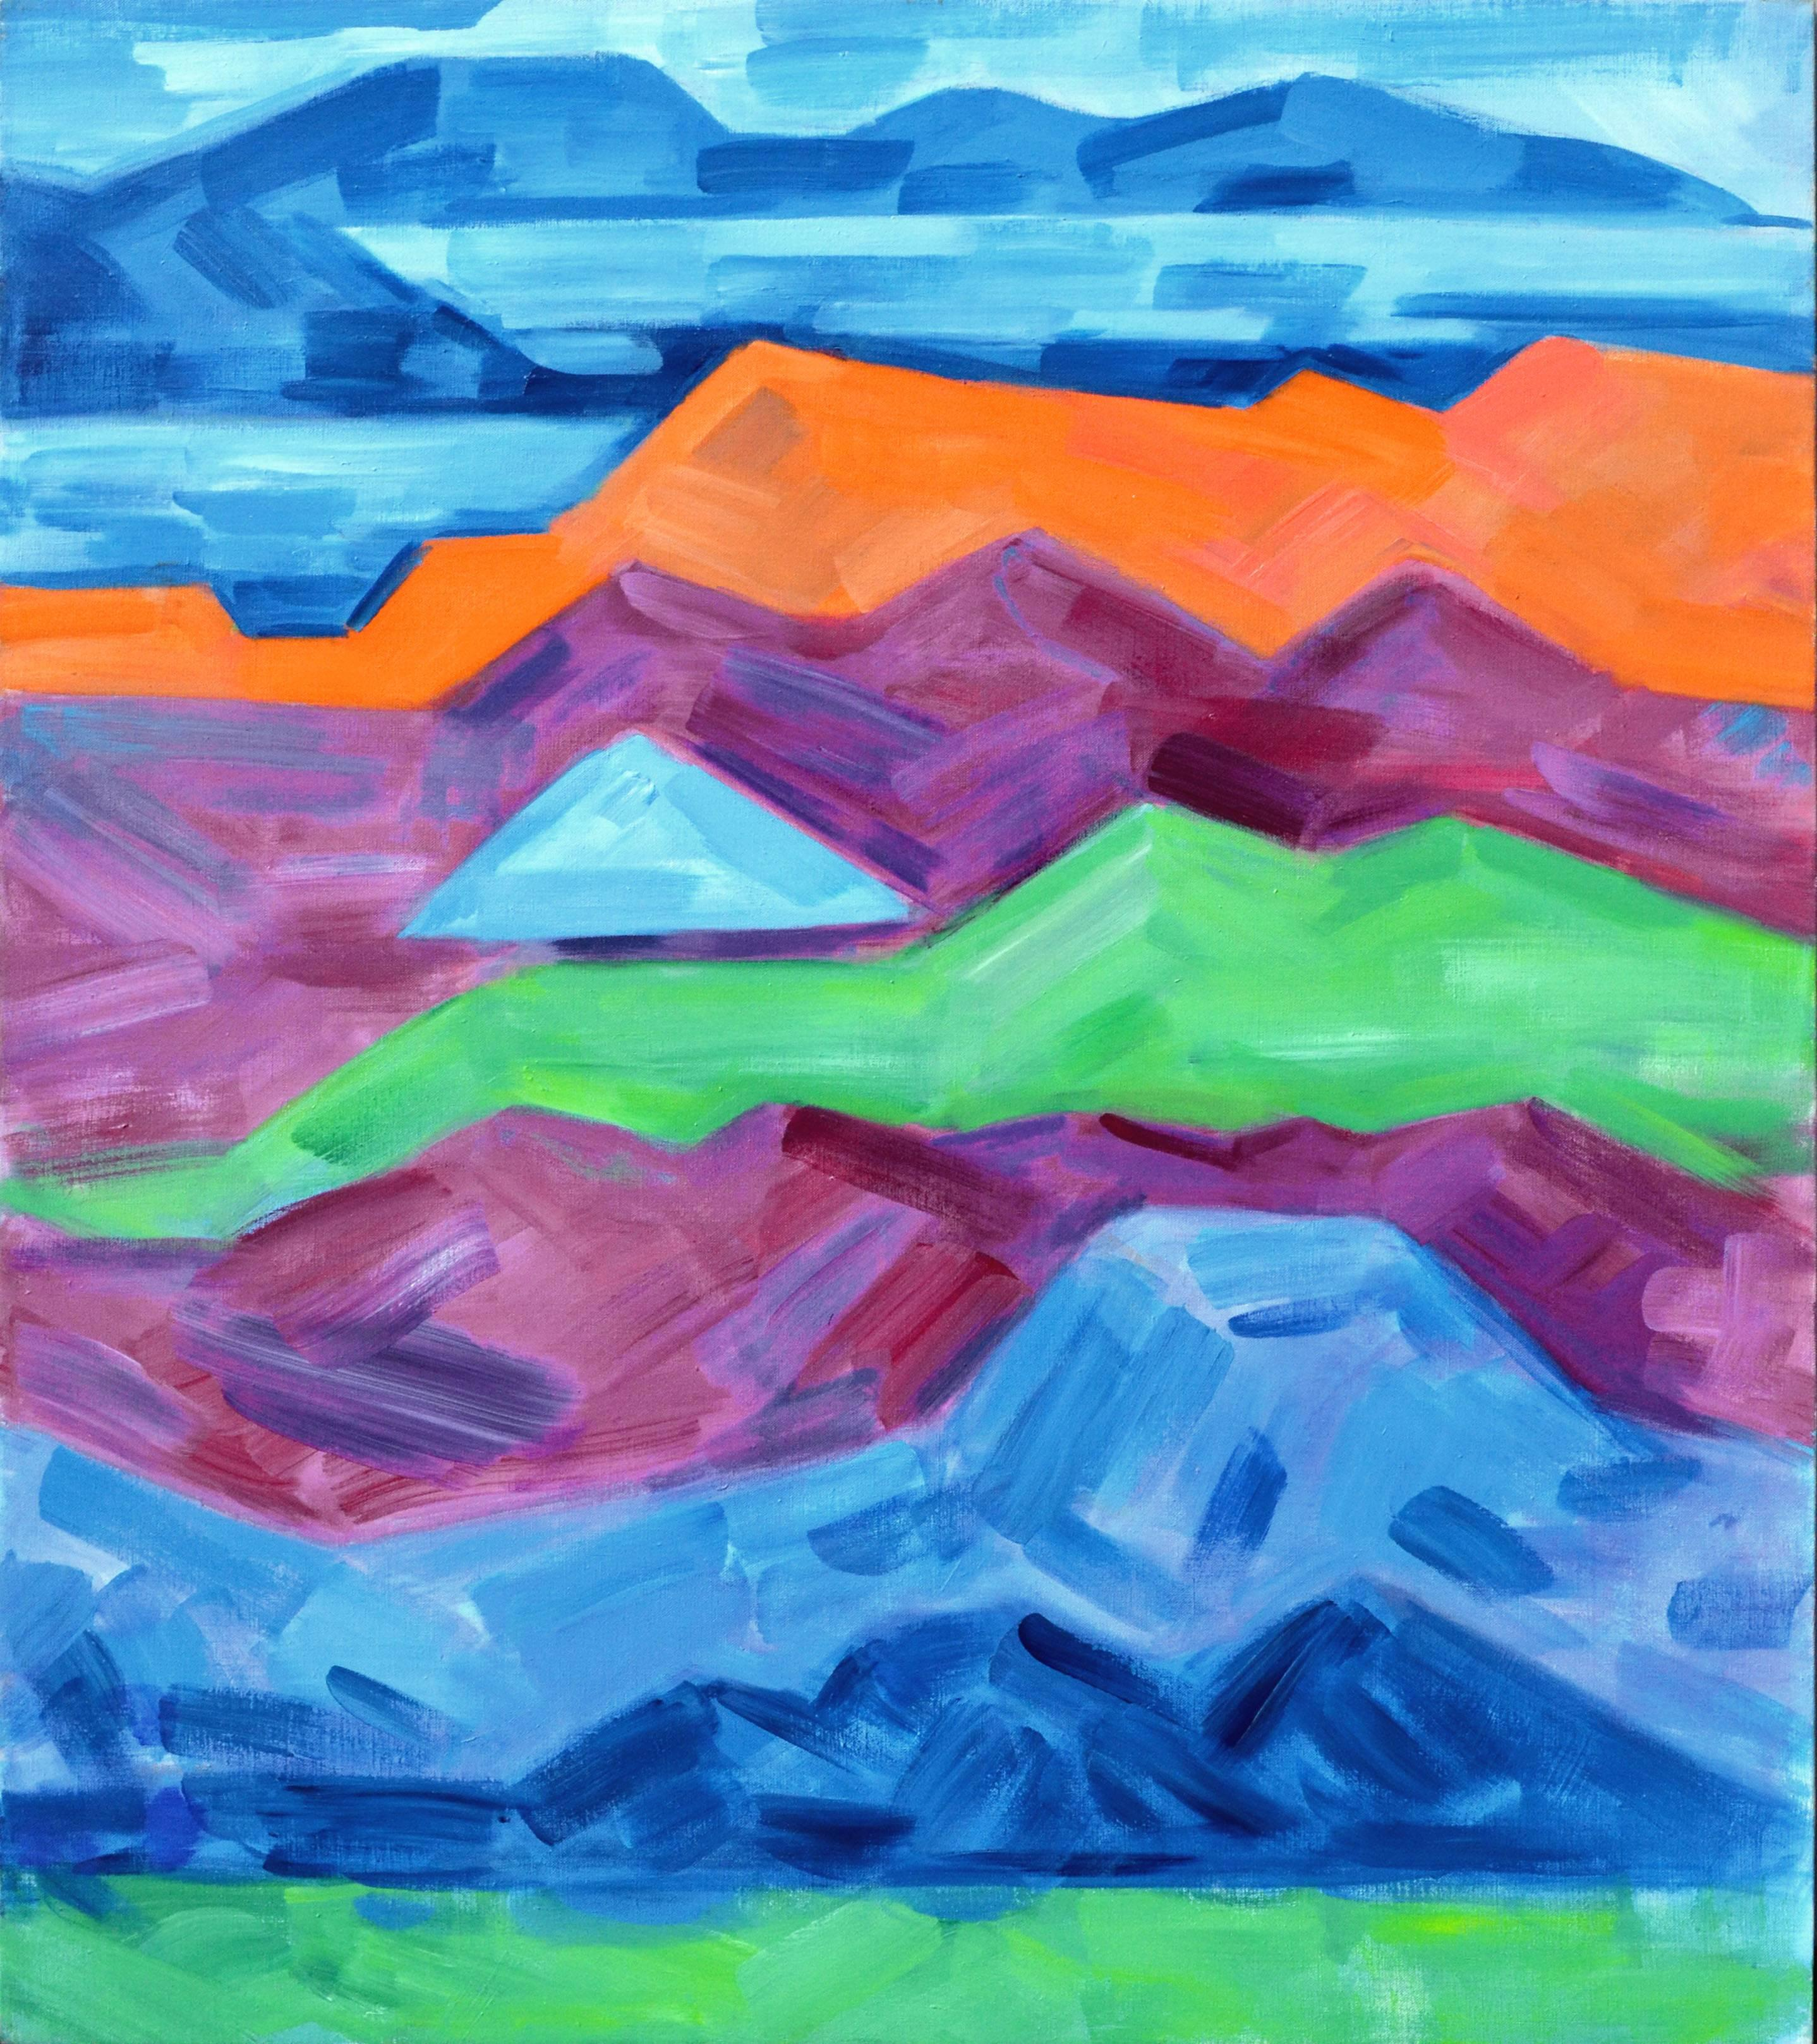 Bay Area Mountains - Abstract Landscape